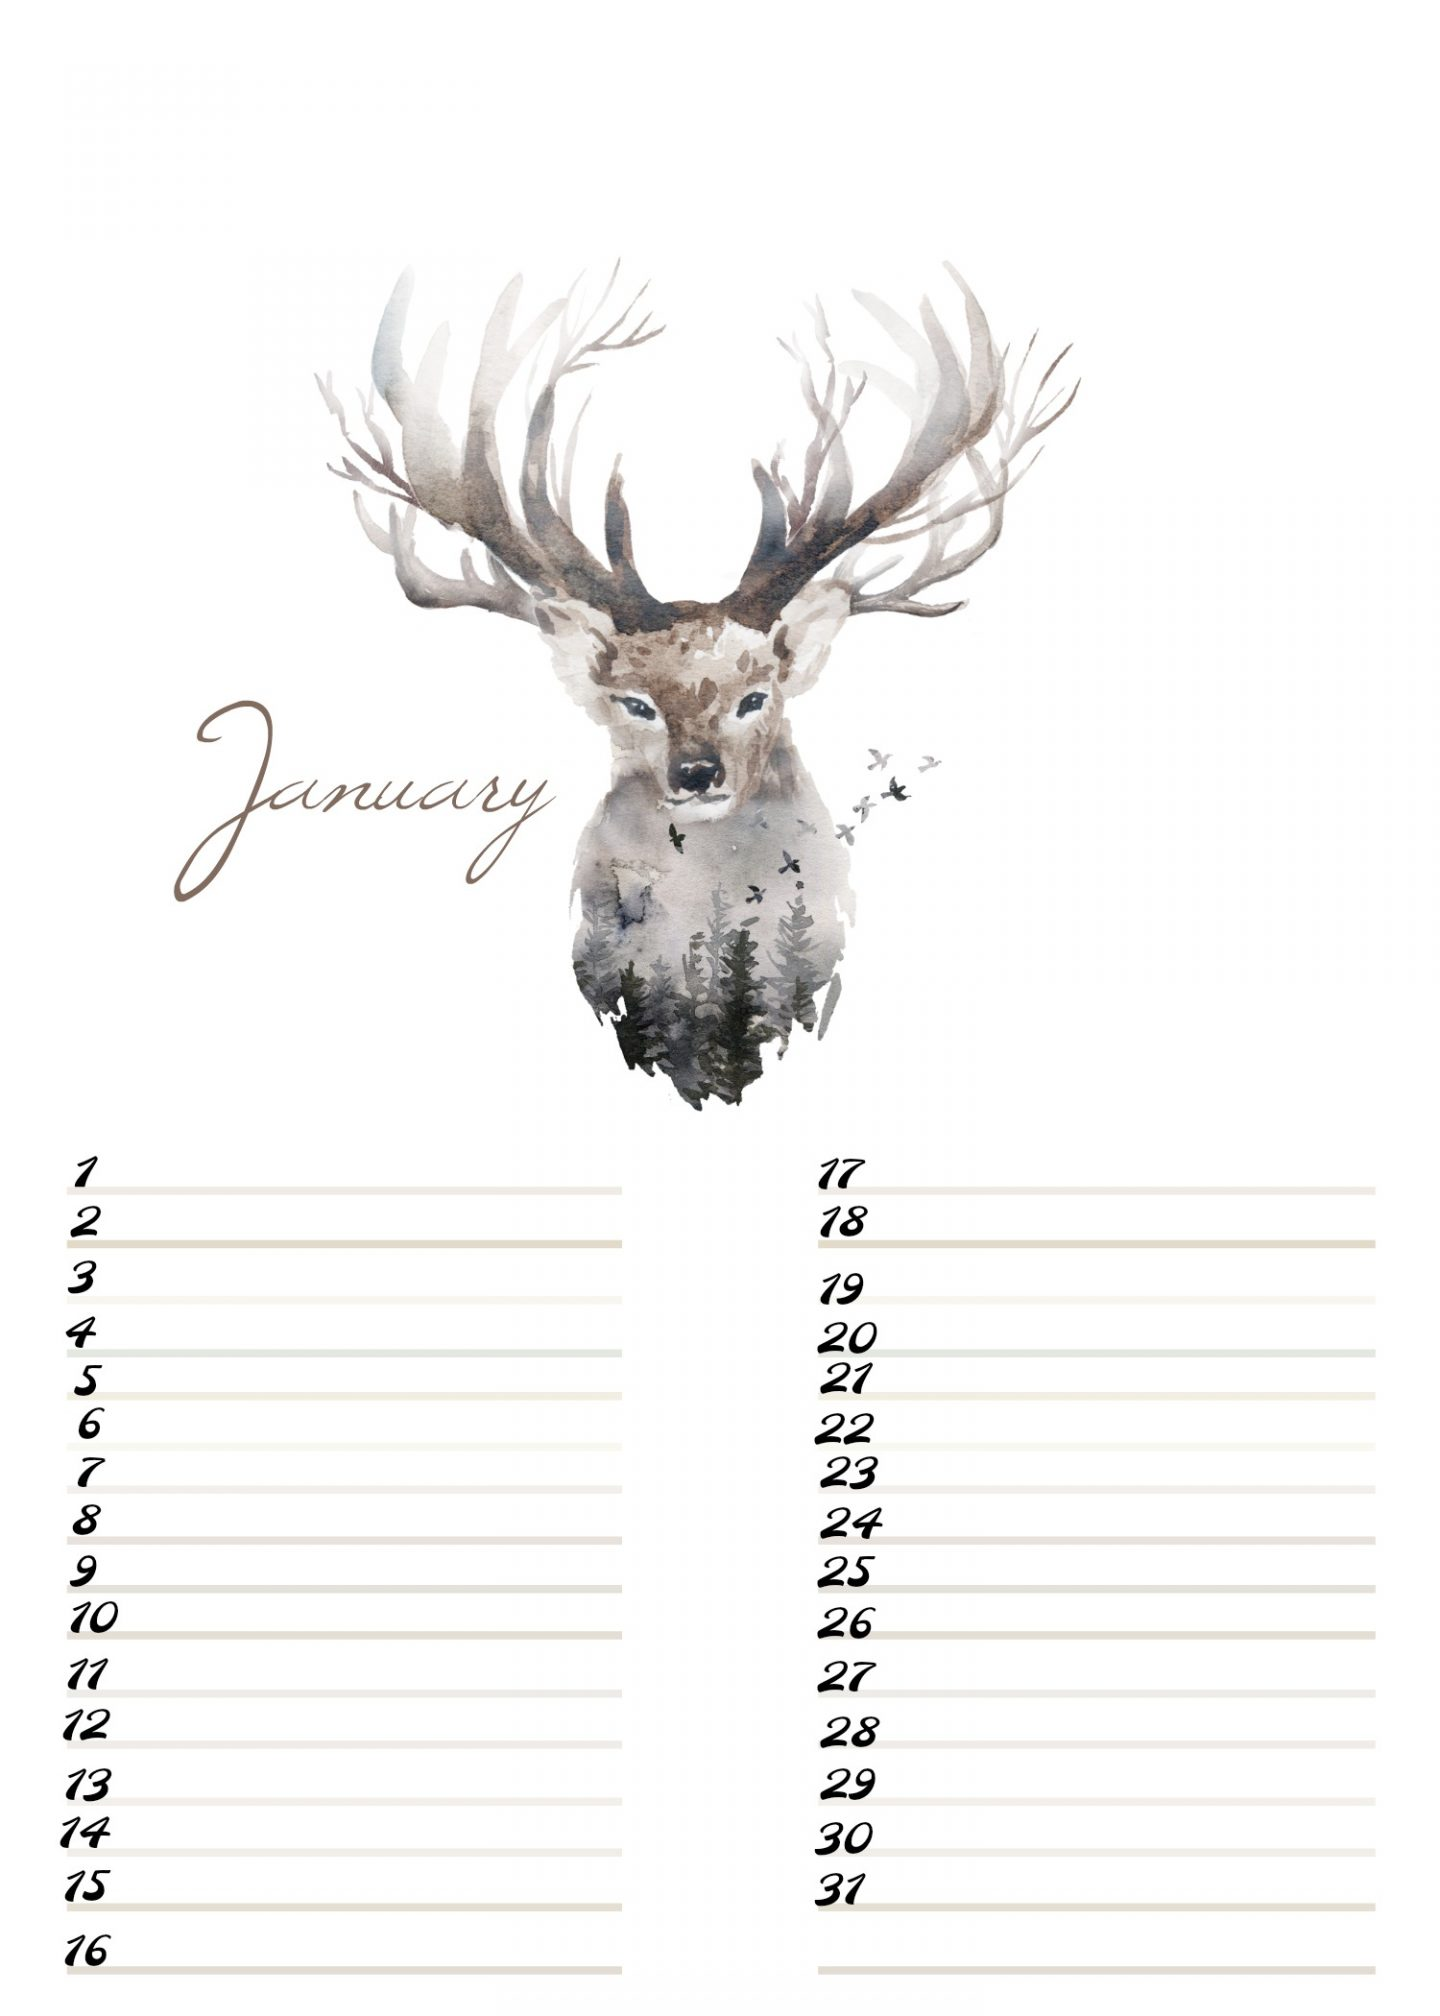 A4 Free Birthday Calendar January ElsaRblog